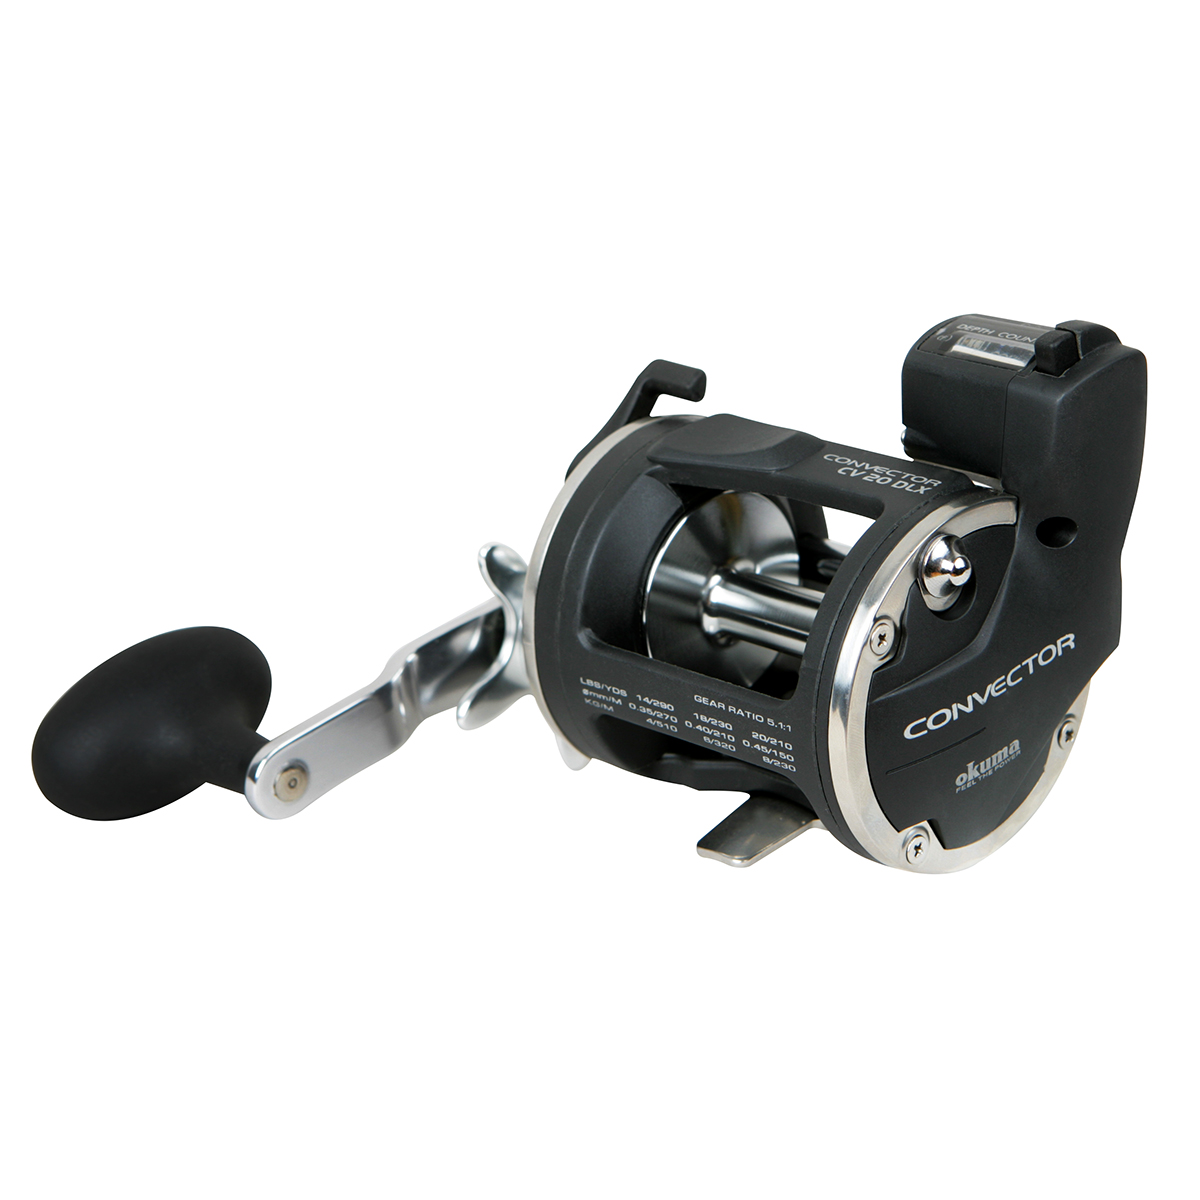 Convector Line Counter Reel Okuma Fishing Rods And Reels